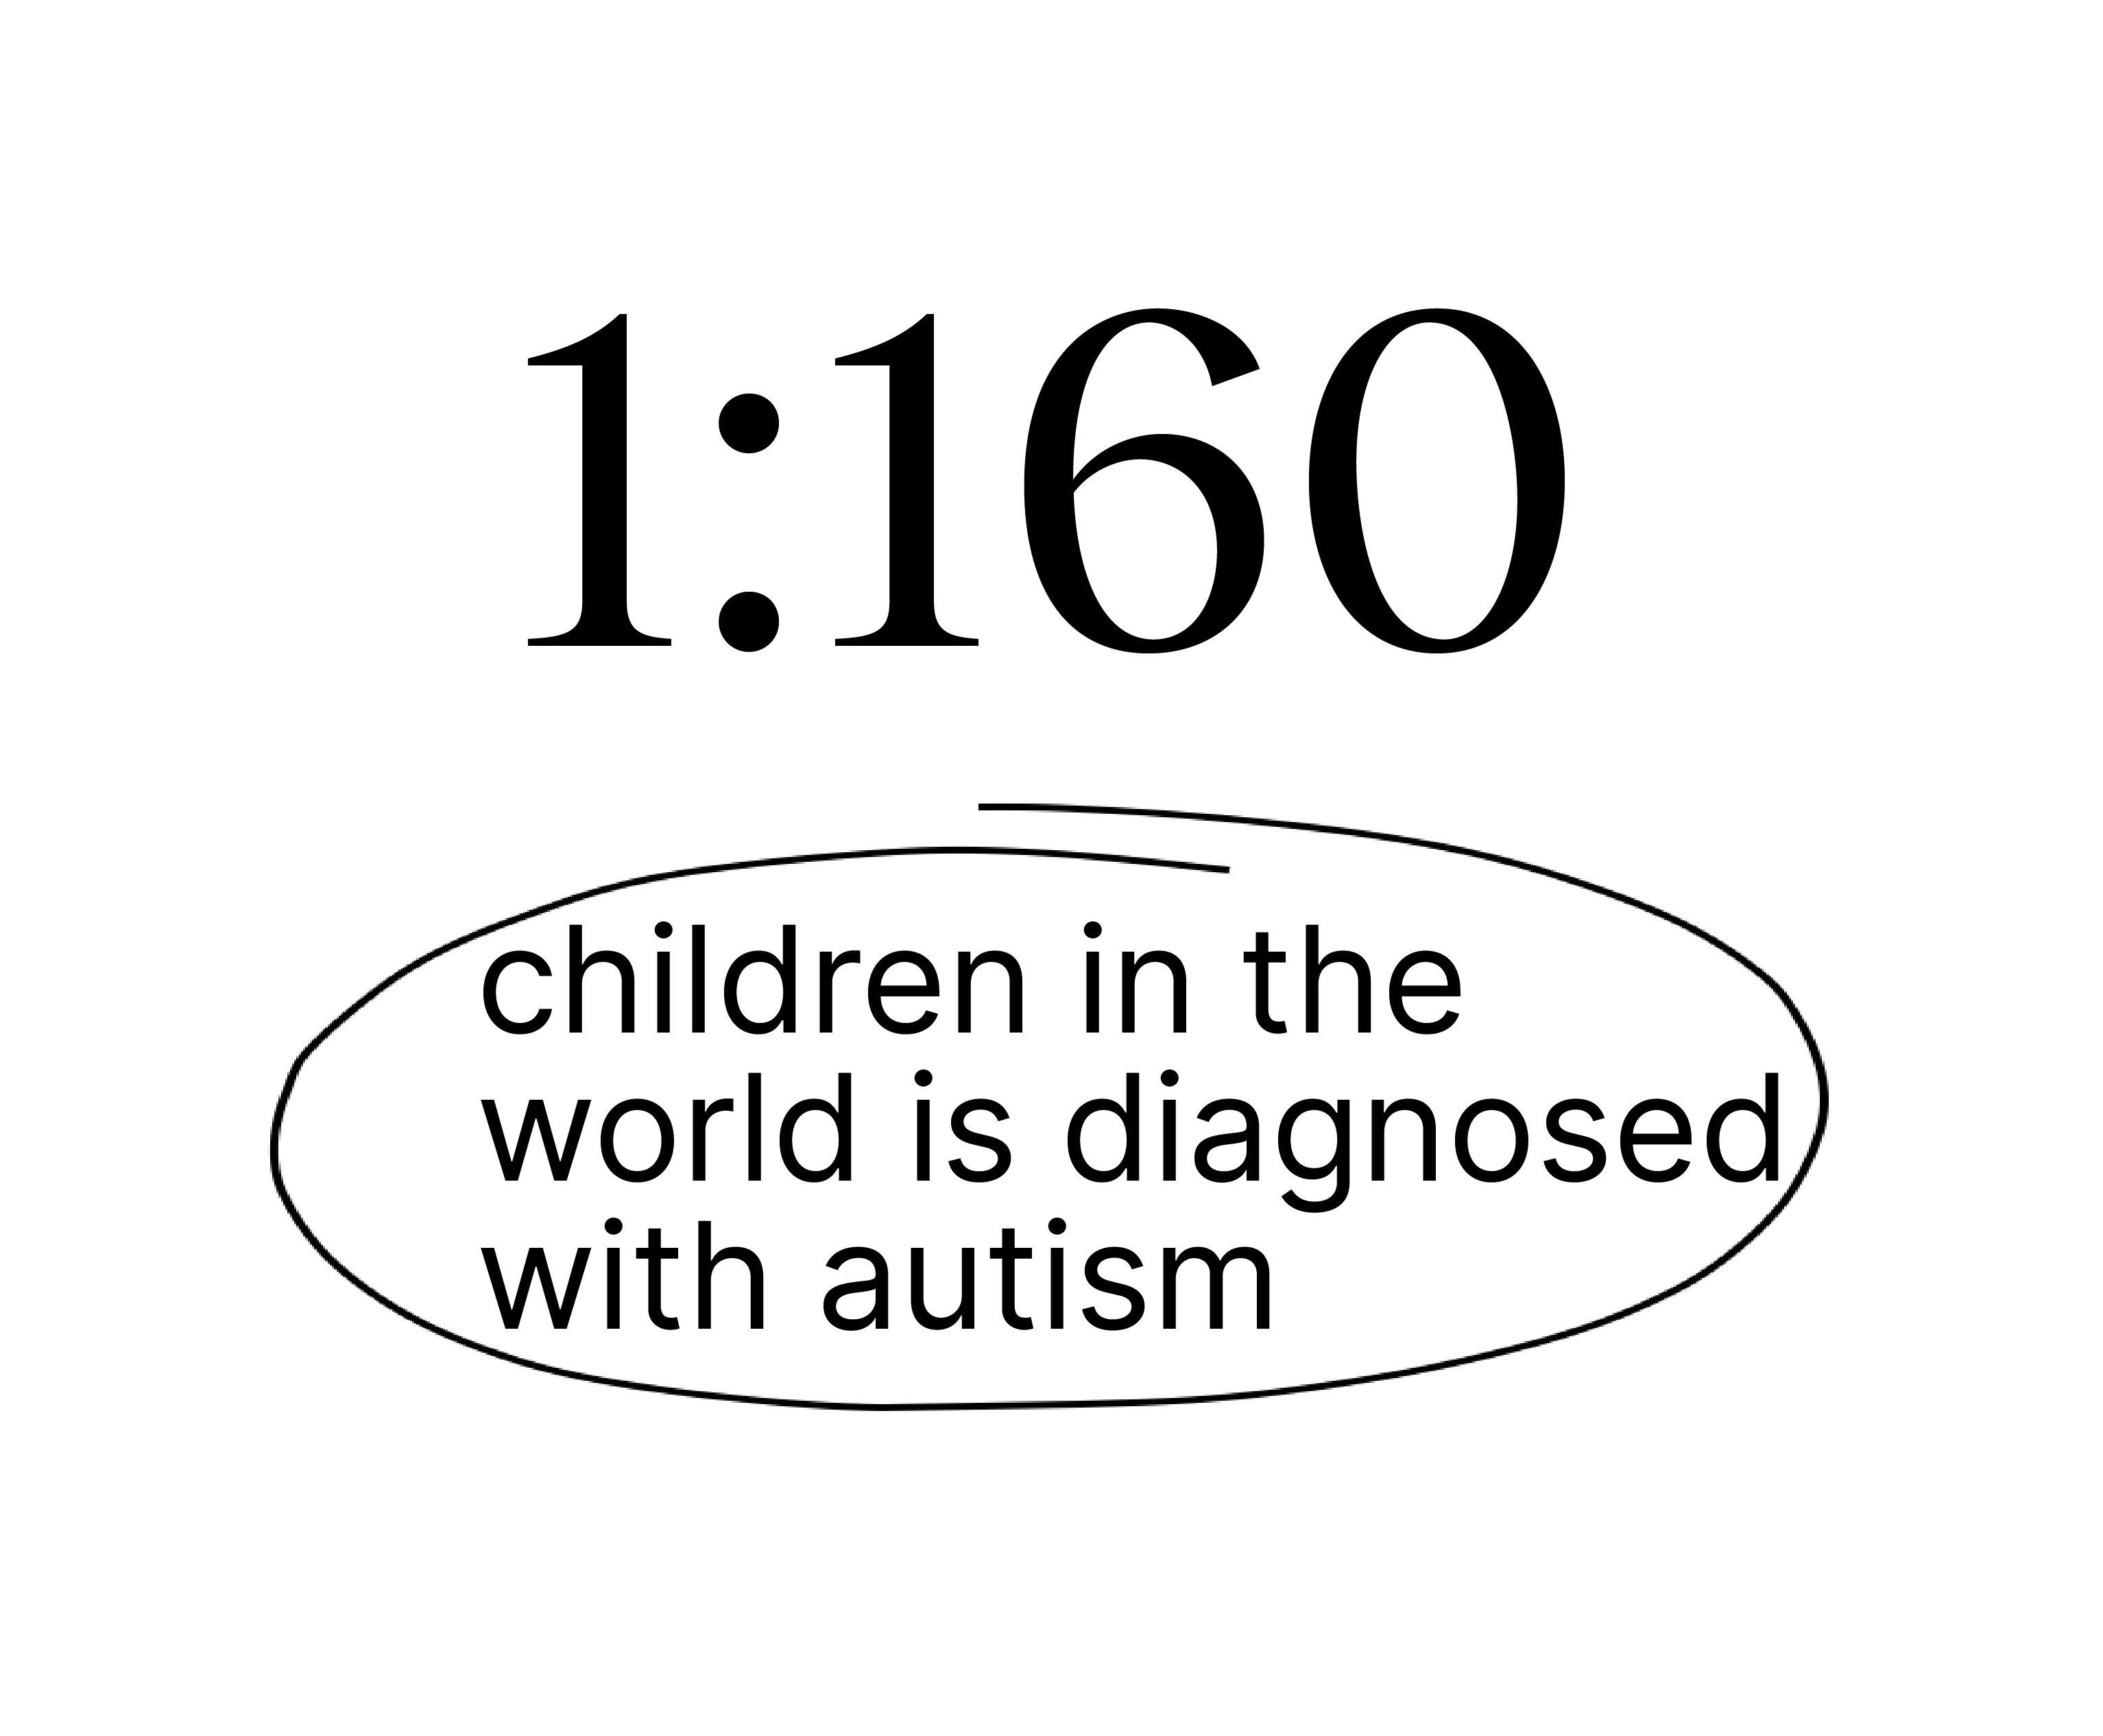 1:160 children in the world is diagnosed with autism.